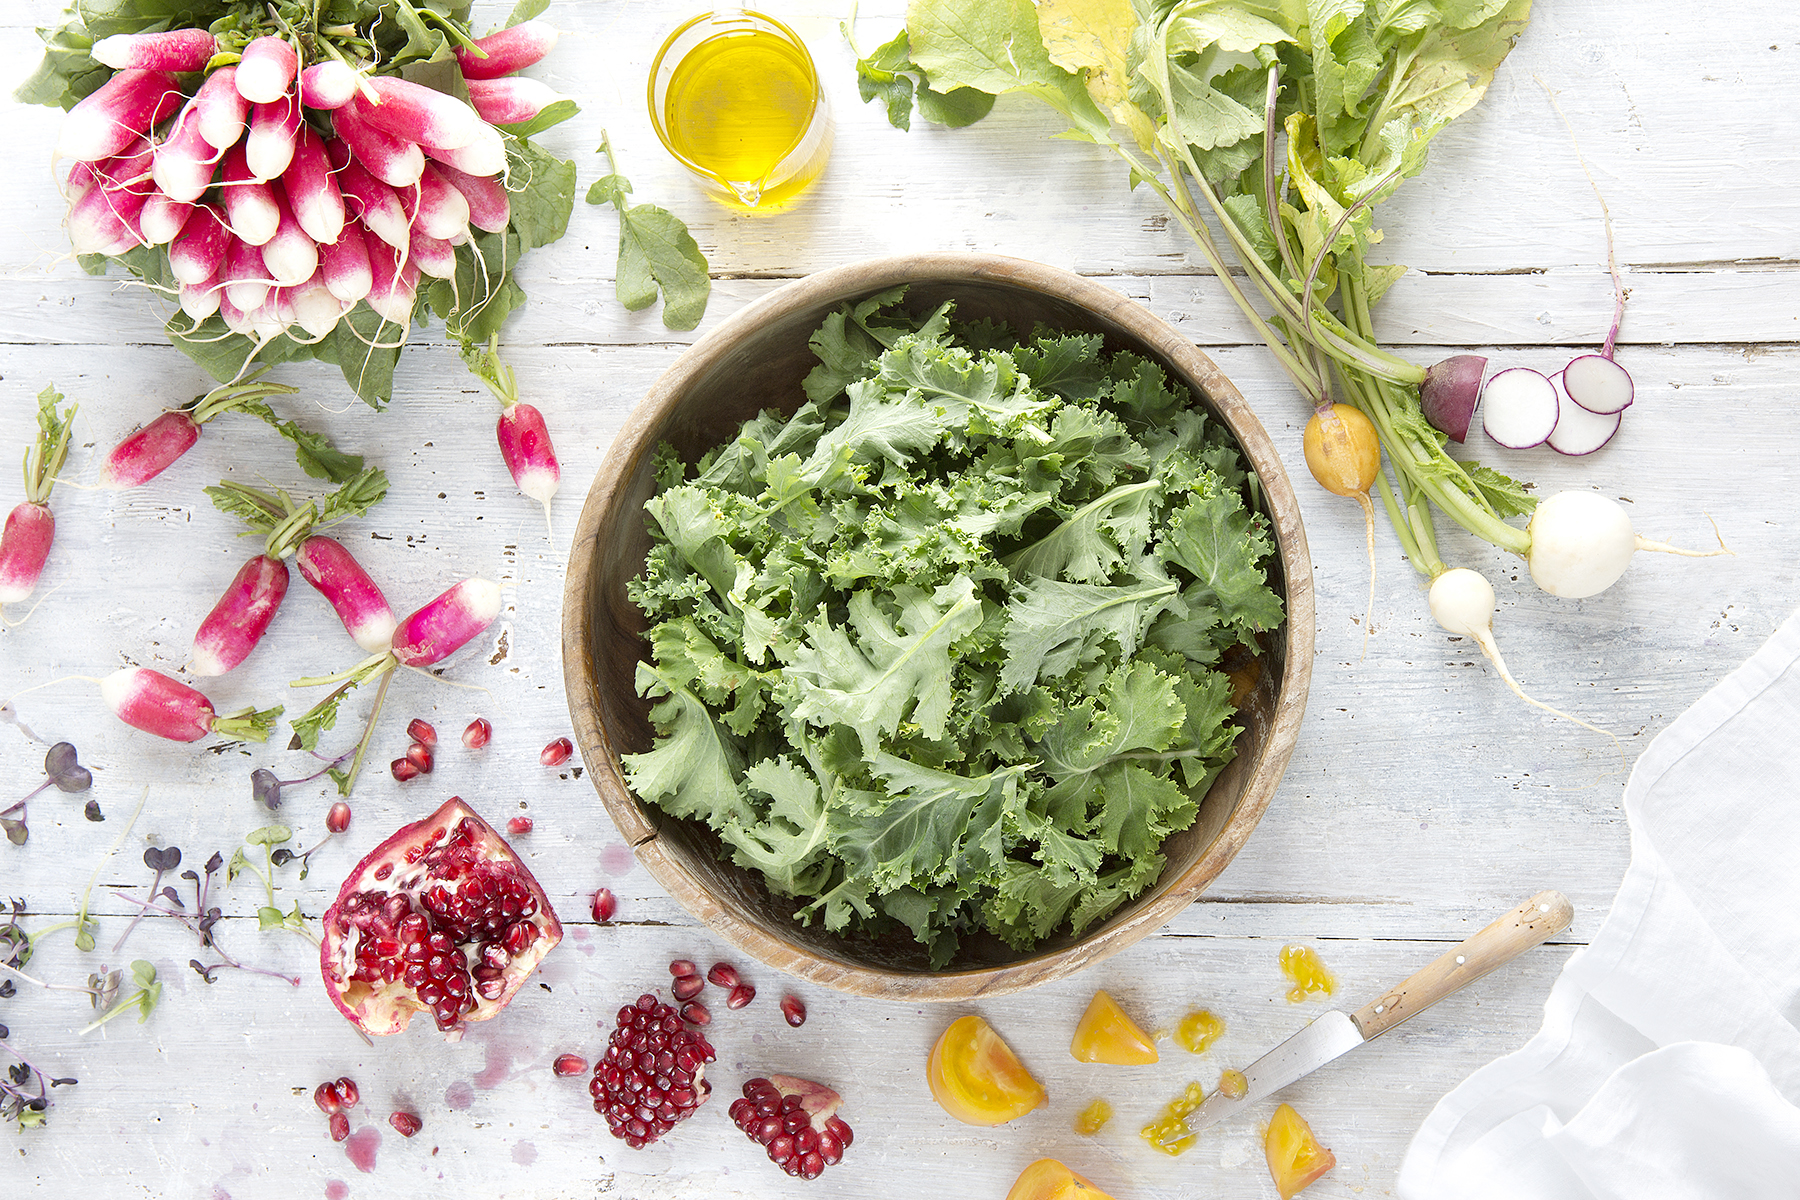 four kale recipes to make now - mothermag.com, july 2016